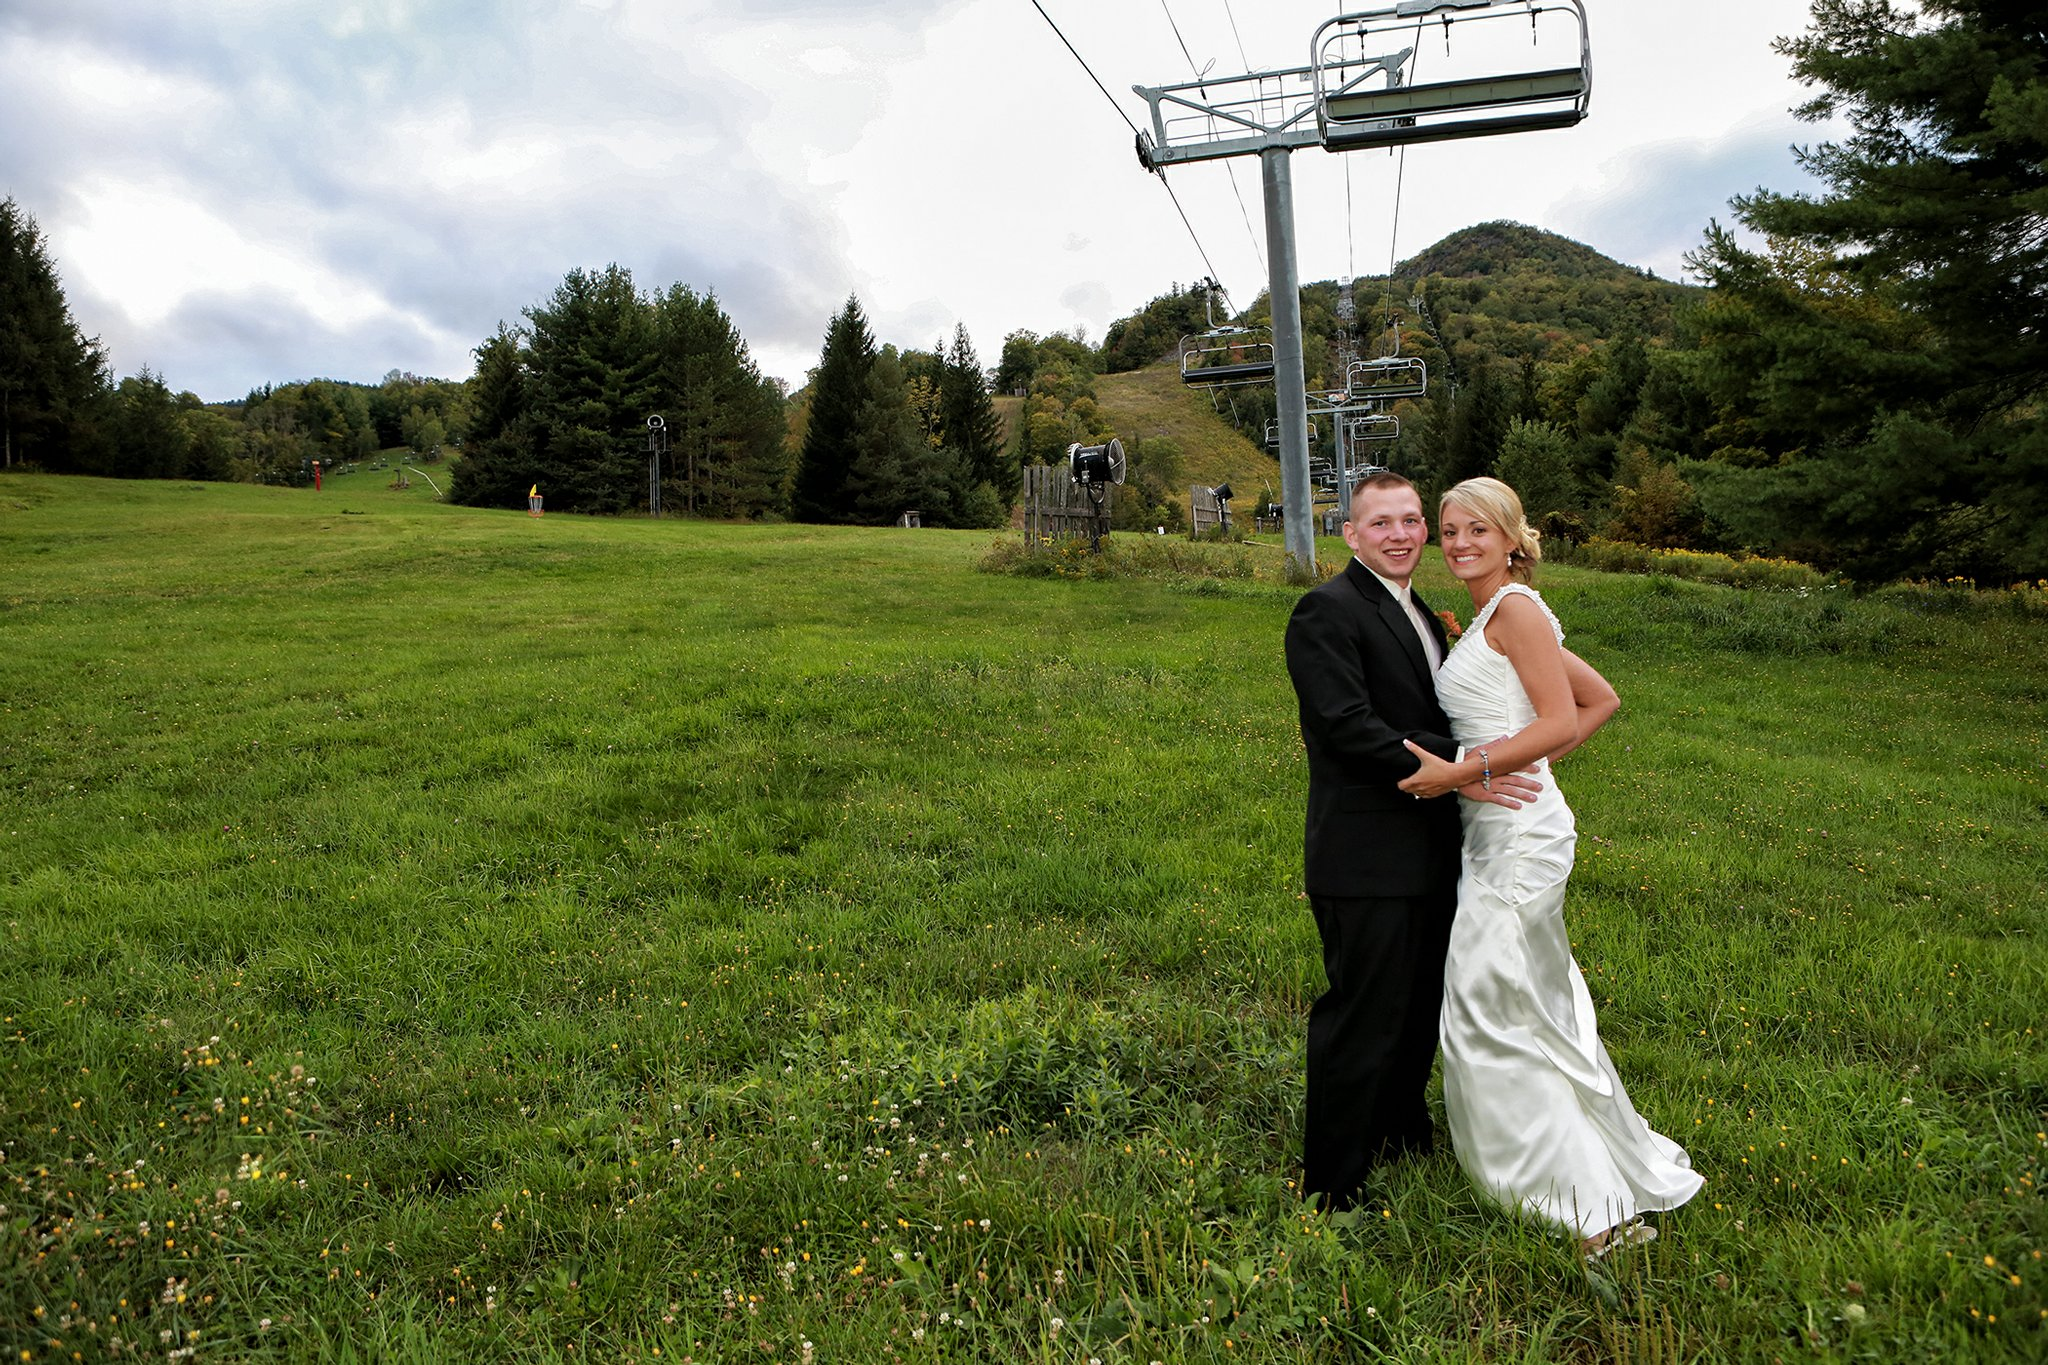 Wedding photo at Windham Mountain in the Catskills